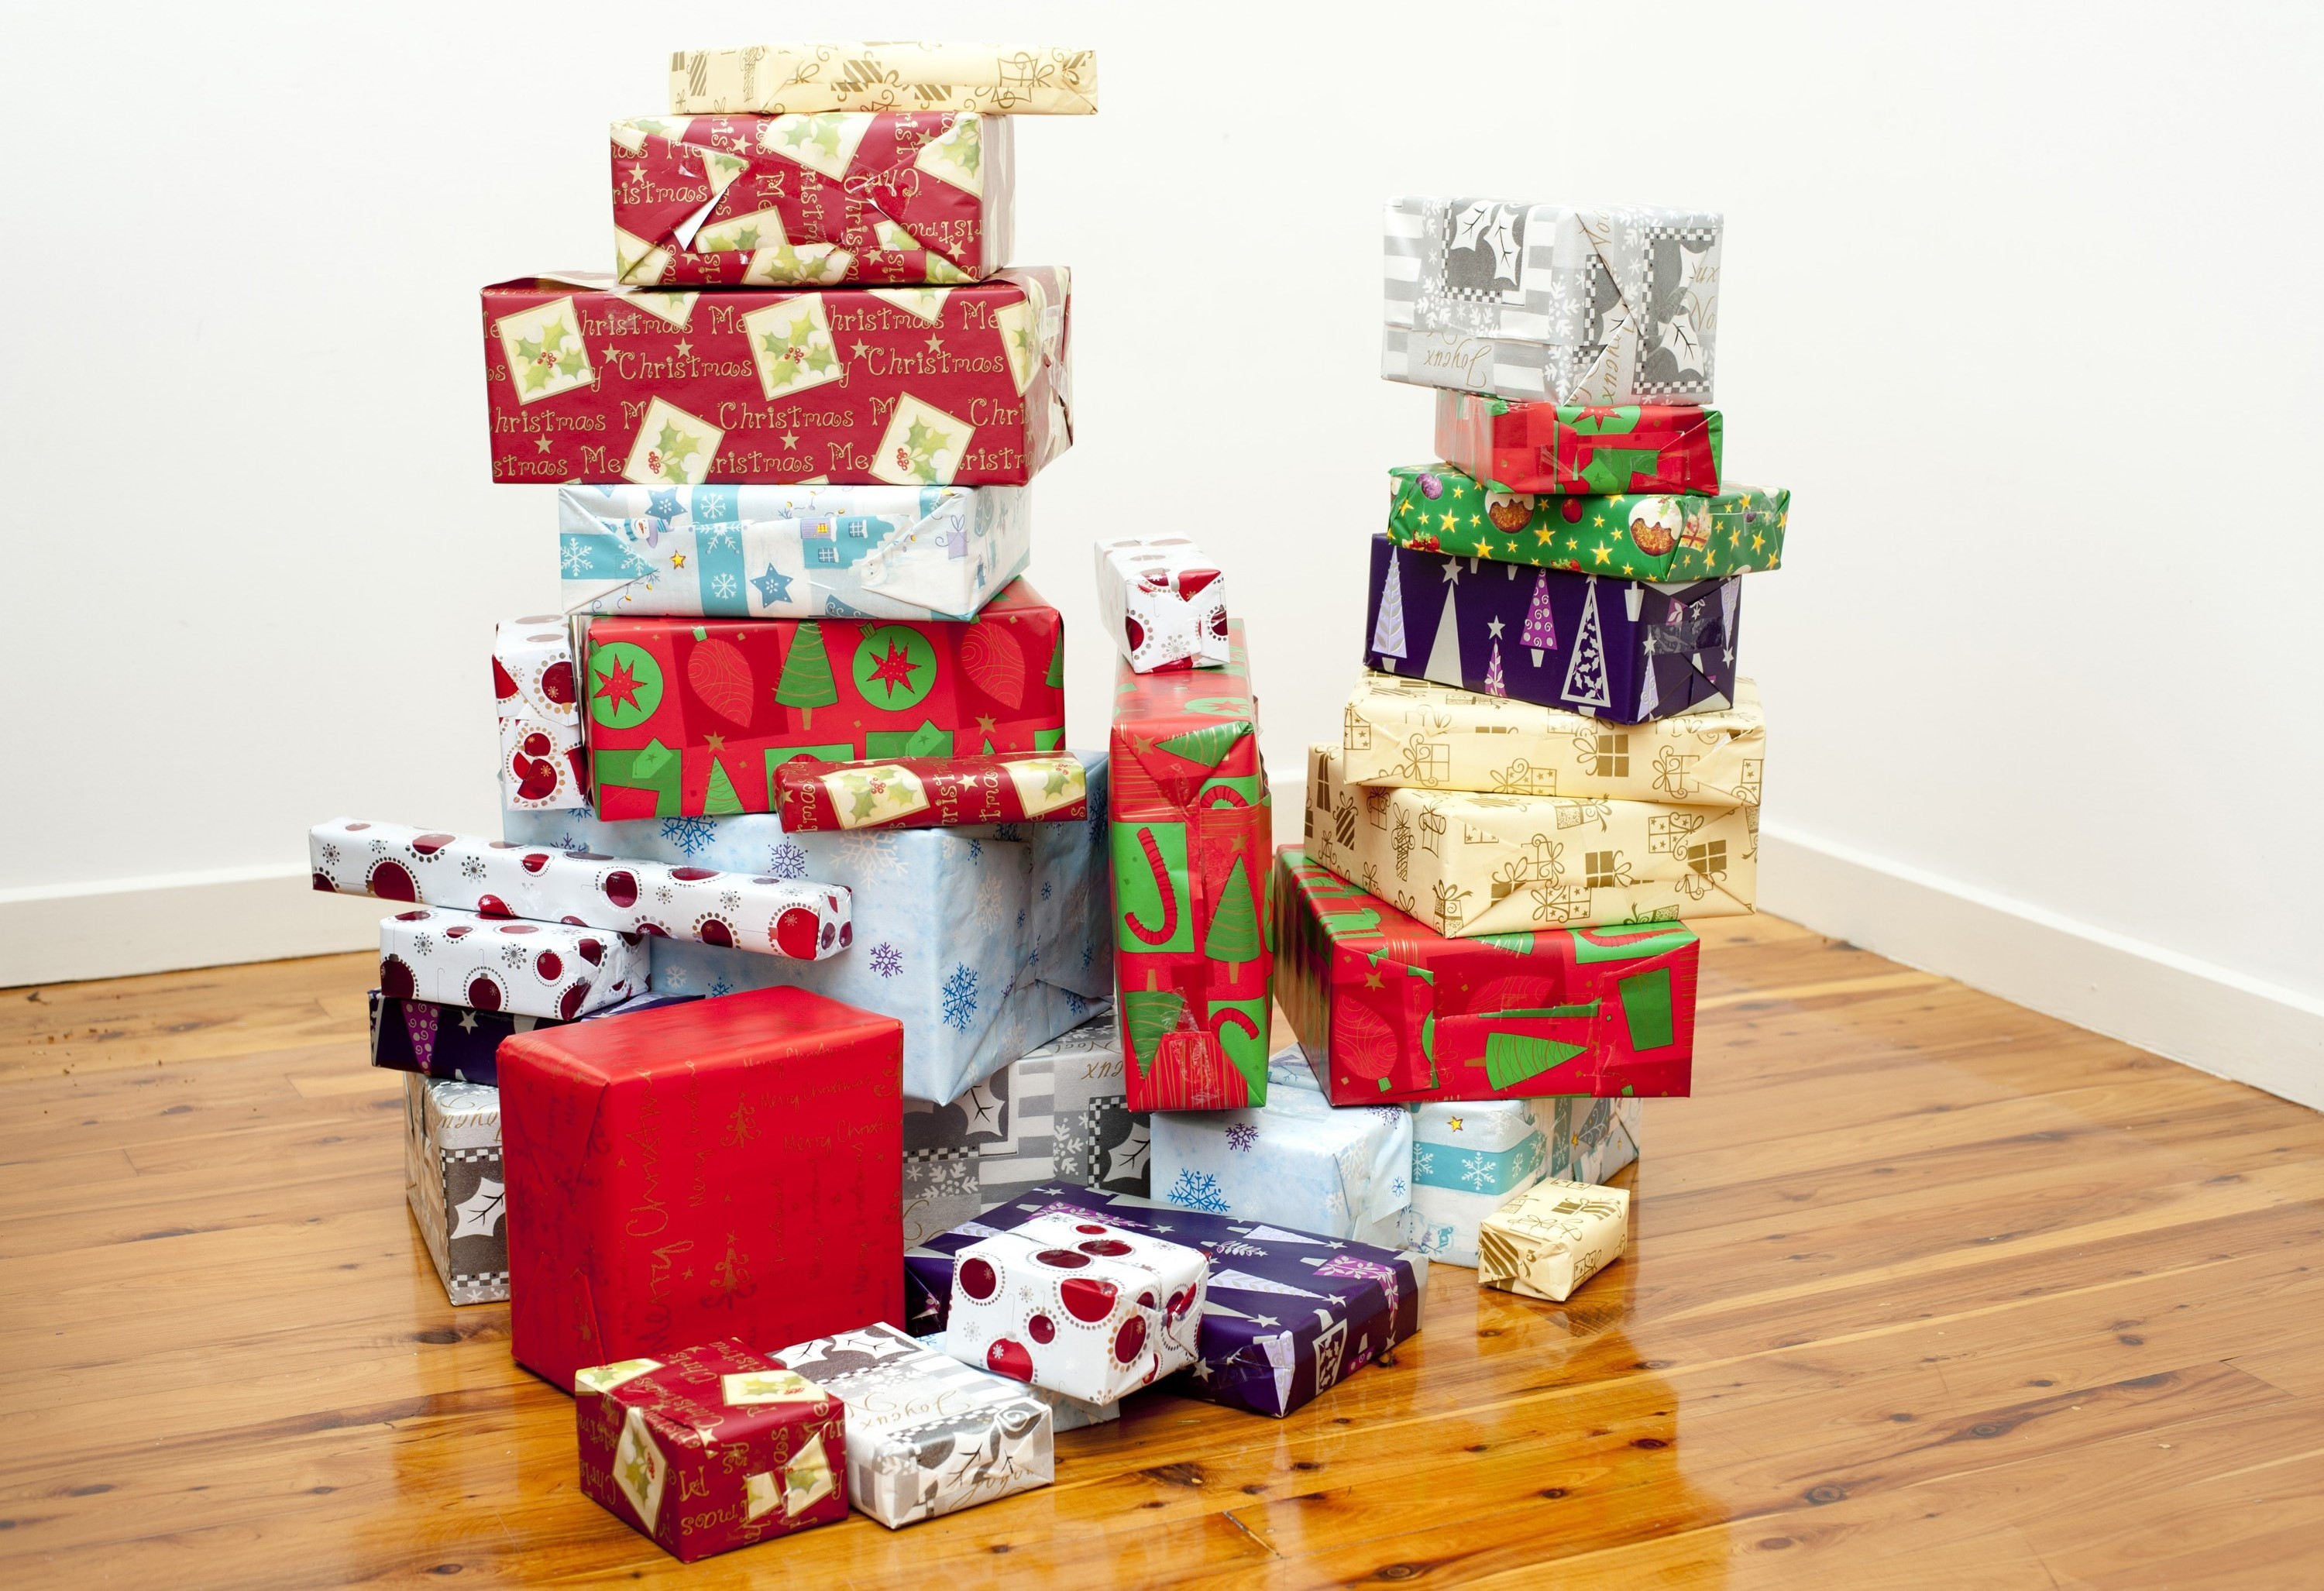 pile of gift boxes wrapped in decorative wrapping paper with seasonal patterns indoors